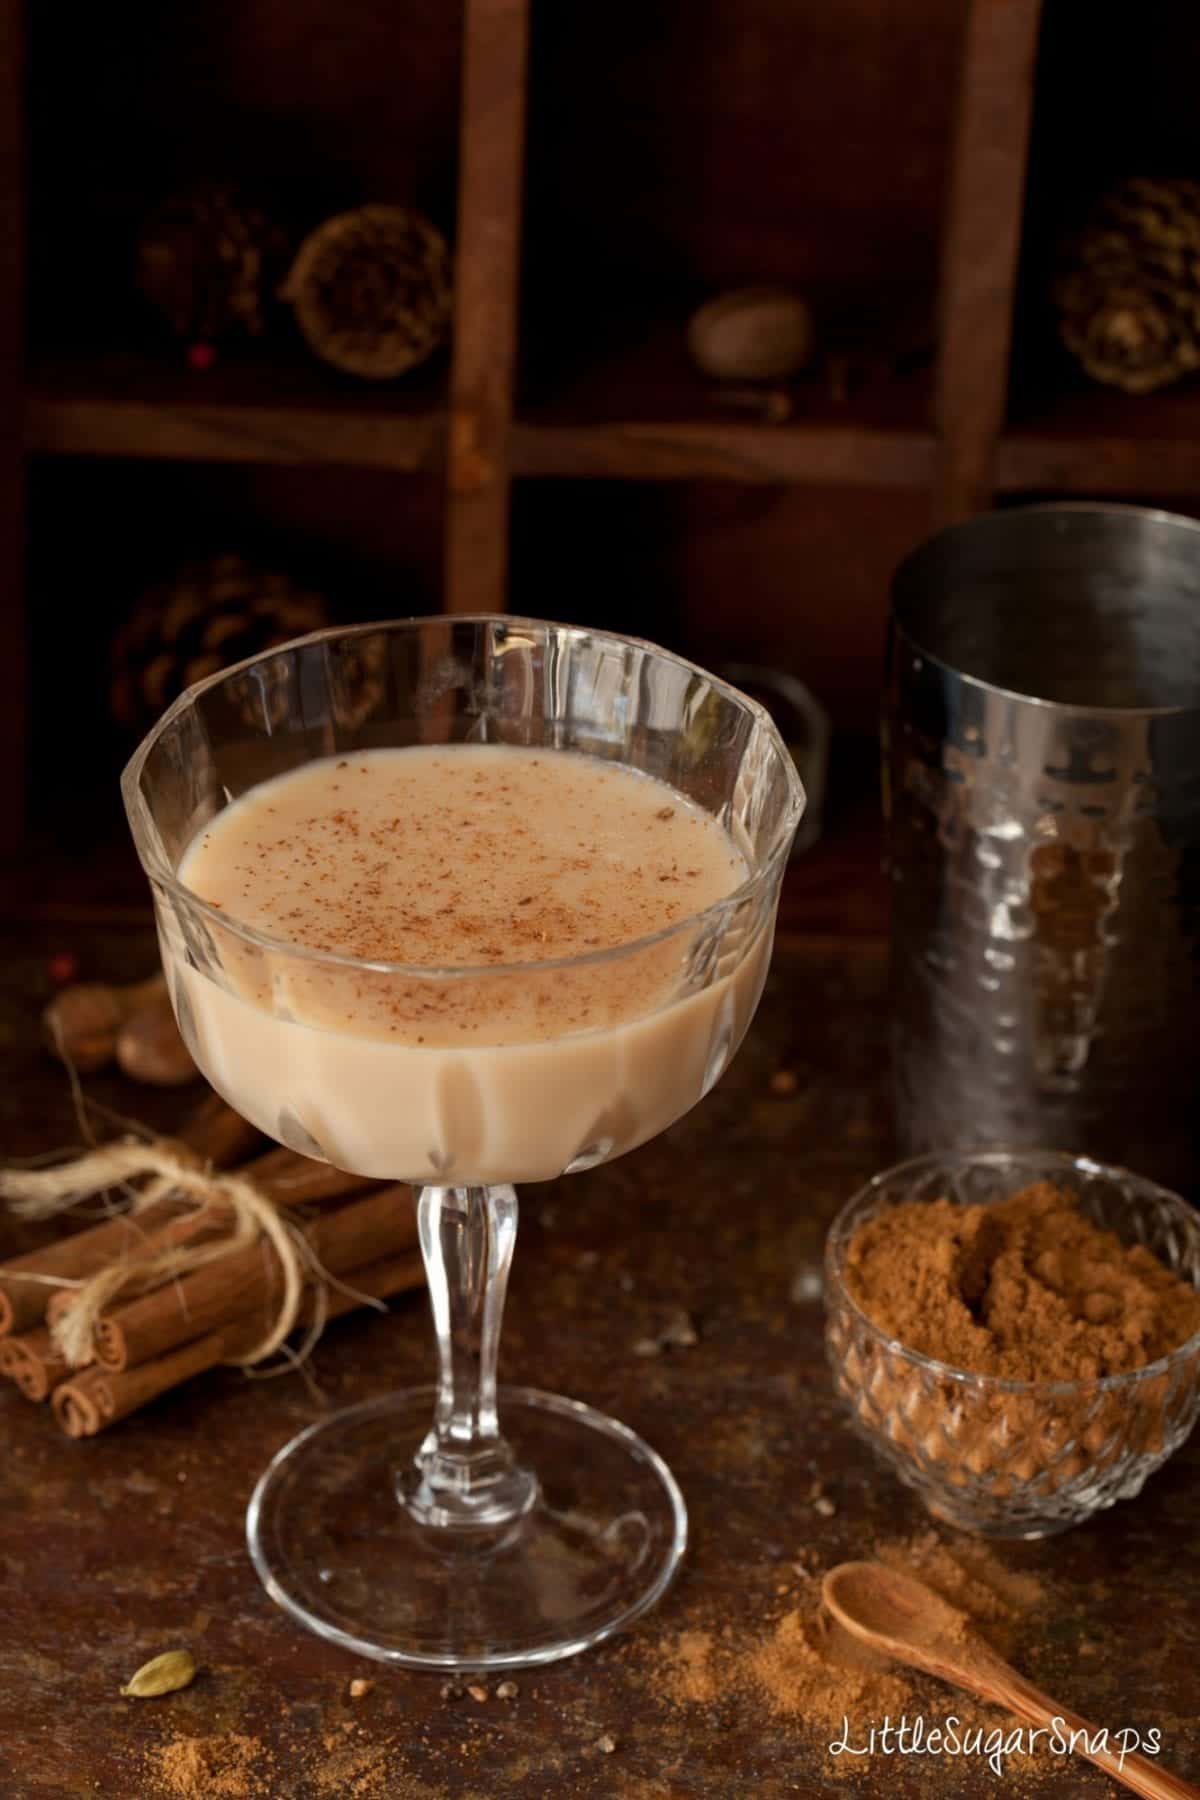 The milky drink can be enjoyed warm, as it is, but, when cooled and muddled with vanilla vodka it is transformed into a gently spiced, smooth and slightly sweet cocktail.